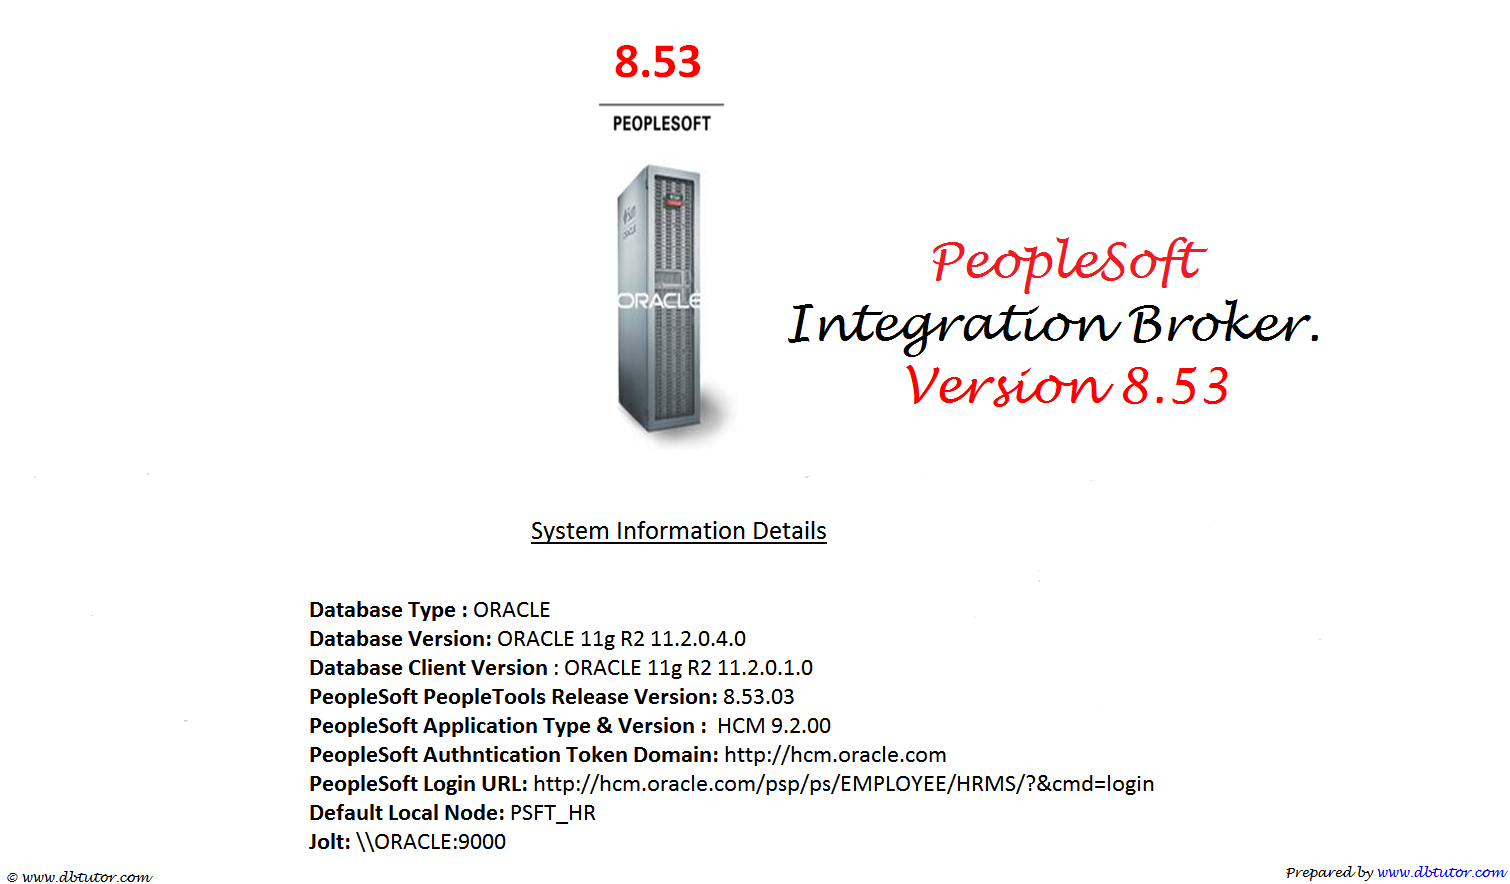 PeopleSoft Integration Broker 8.53